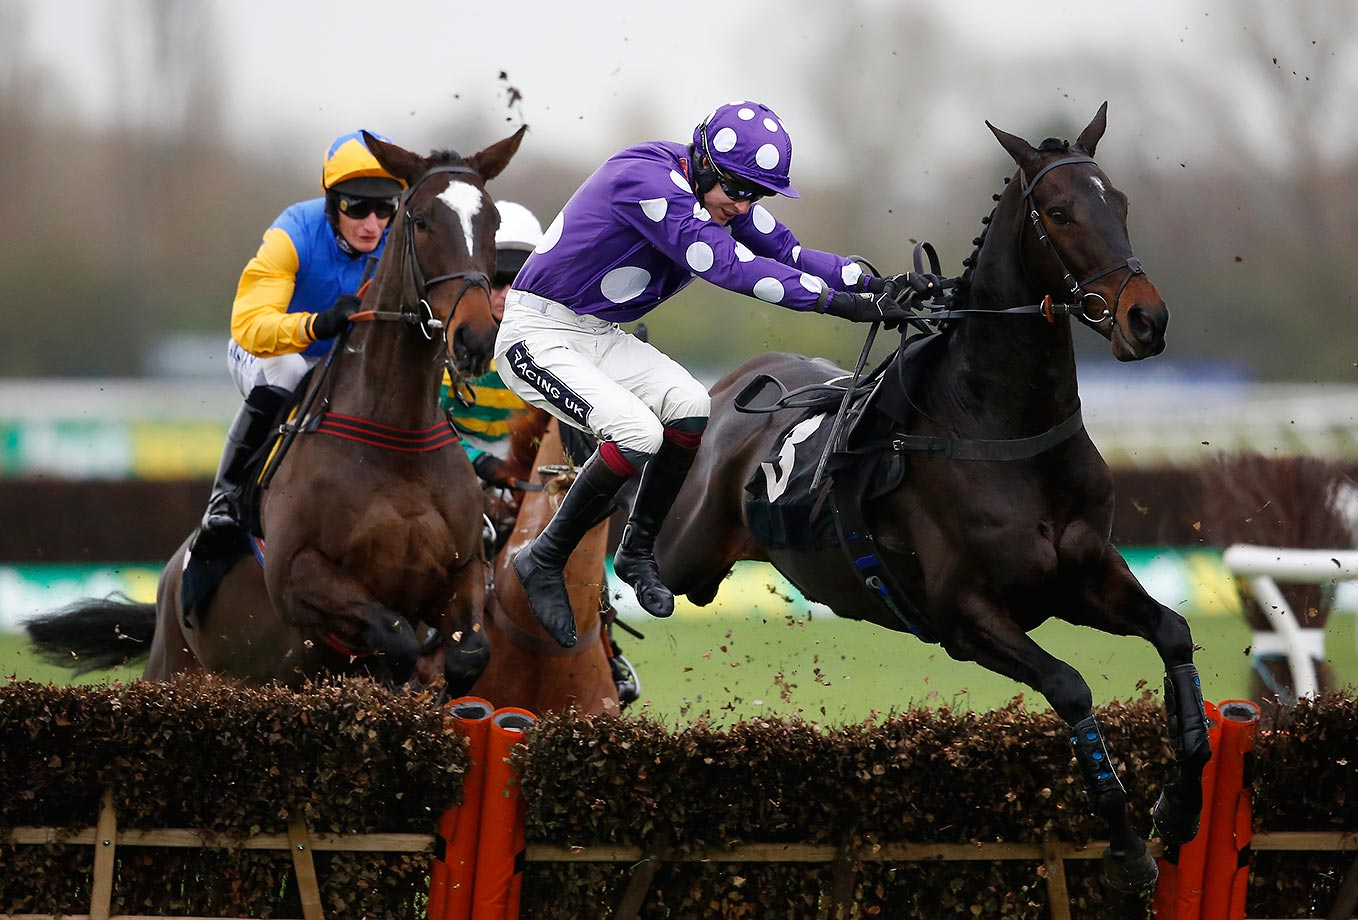 Aidan Coleman falling off Acajou Des Bieffes at the bet365 Novices' Hurdle Race at Newbury racecourse in England.